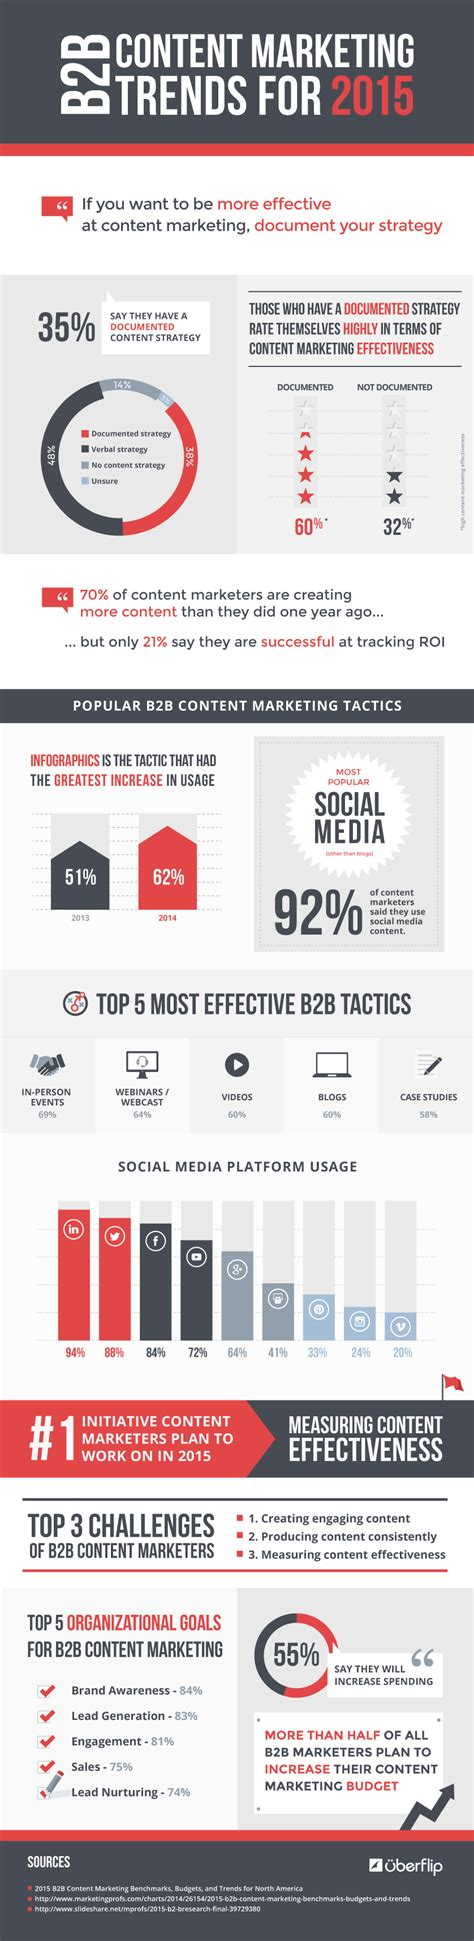 B2b Marketing by 2015 Social Media And Content Trends For B2b Marketers